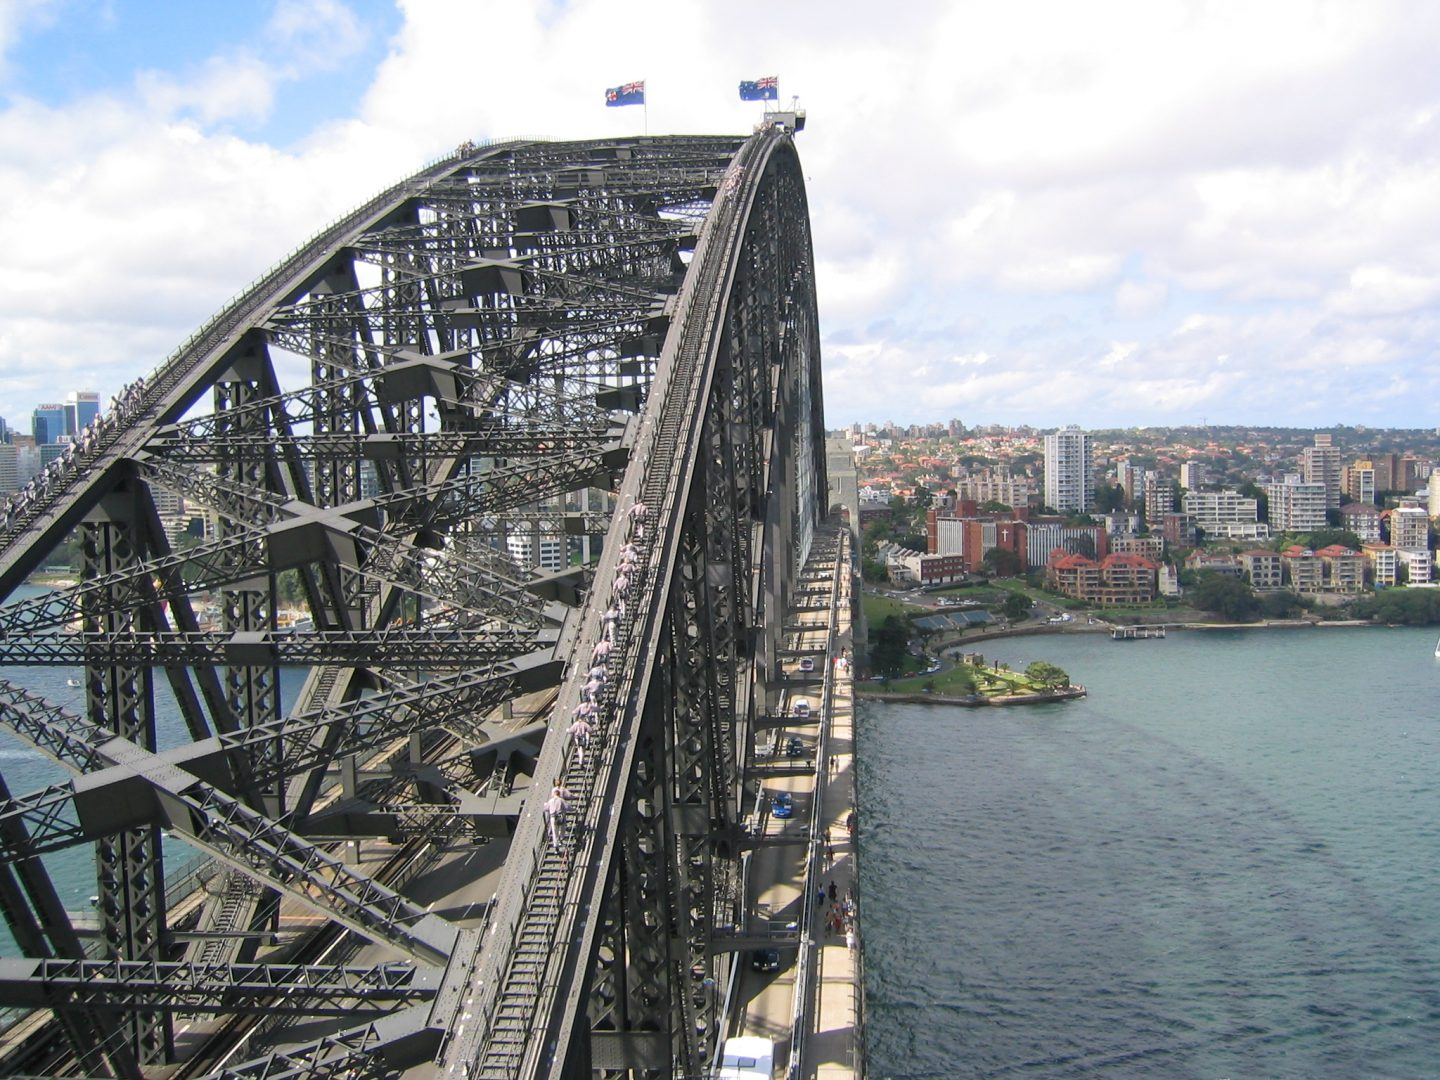 View of the Sydney Harbour Bridge from the Pylon Lookout